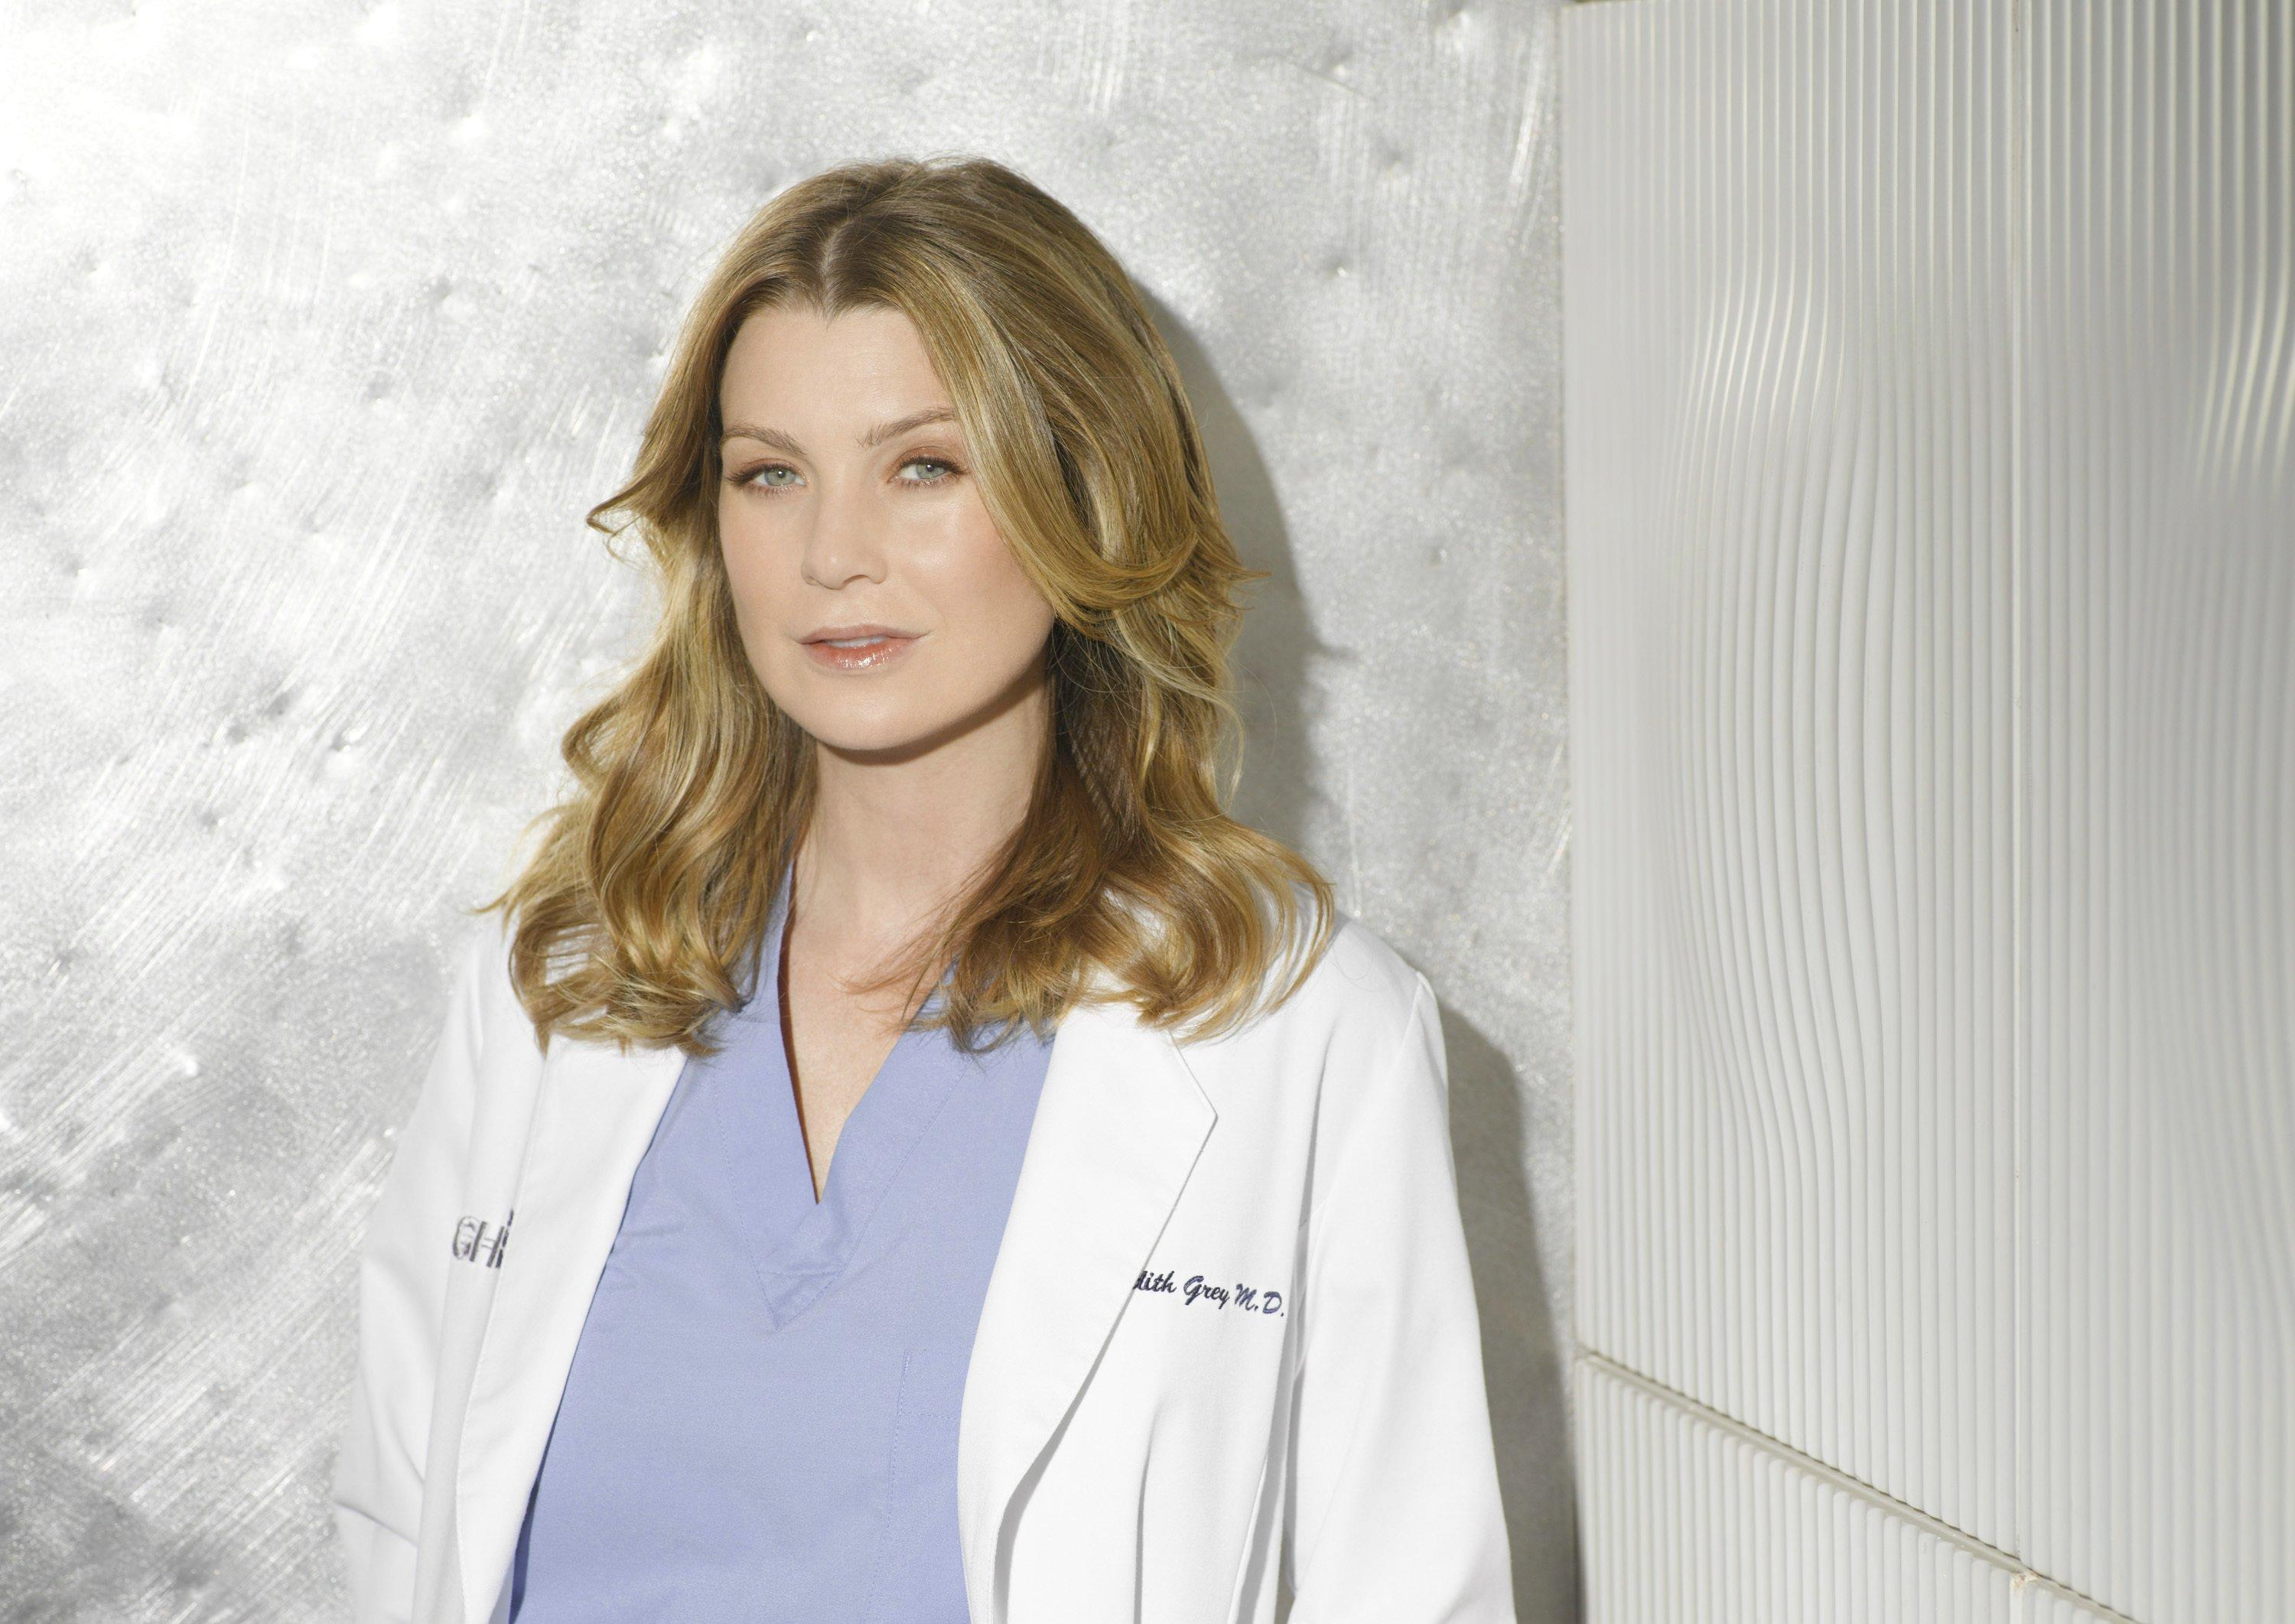 greys anat meredith makes - HD 3000×2123